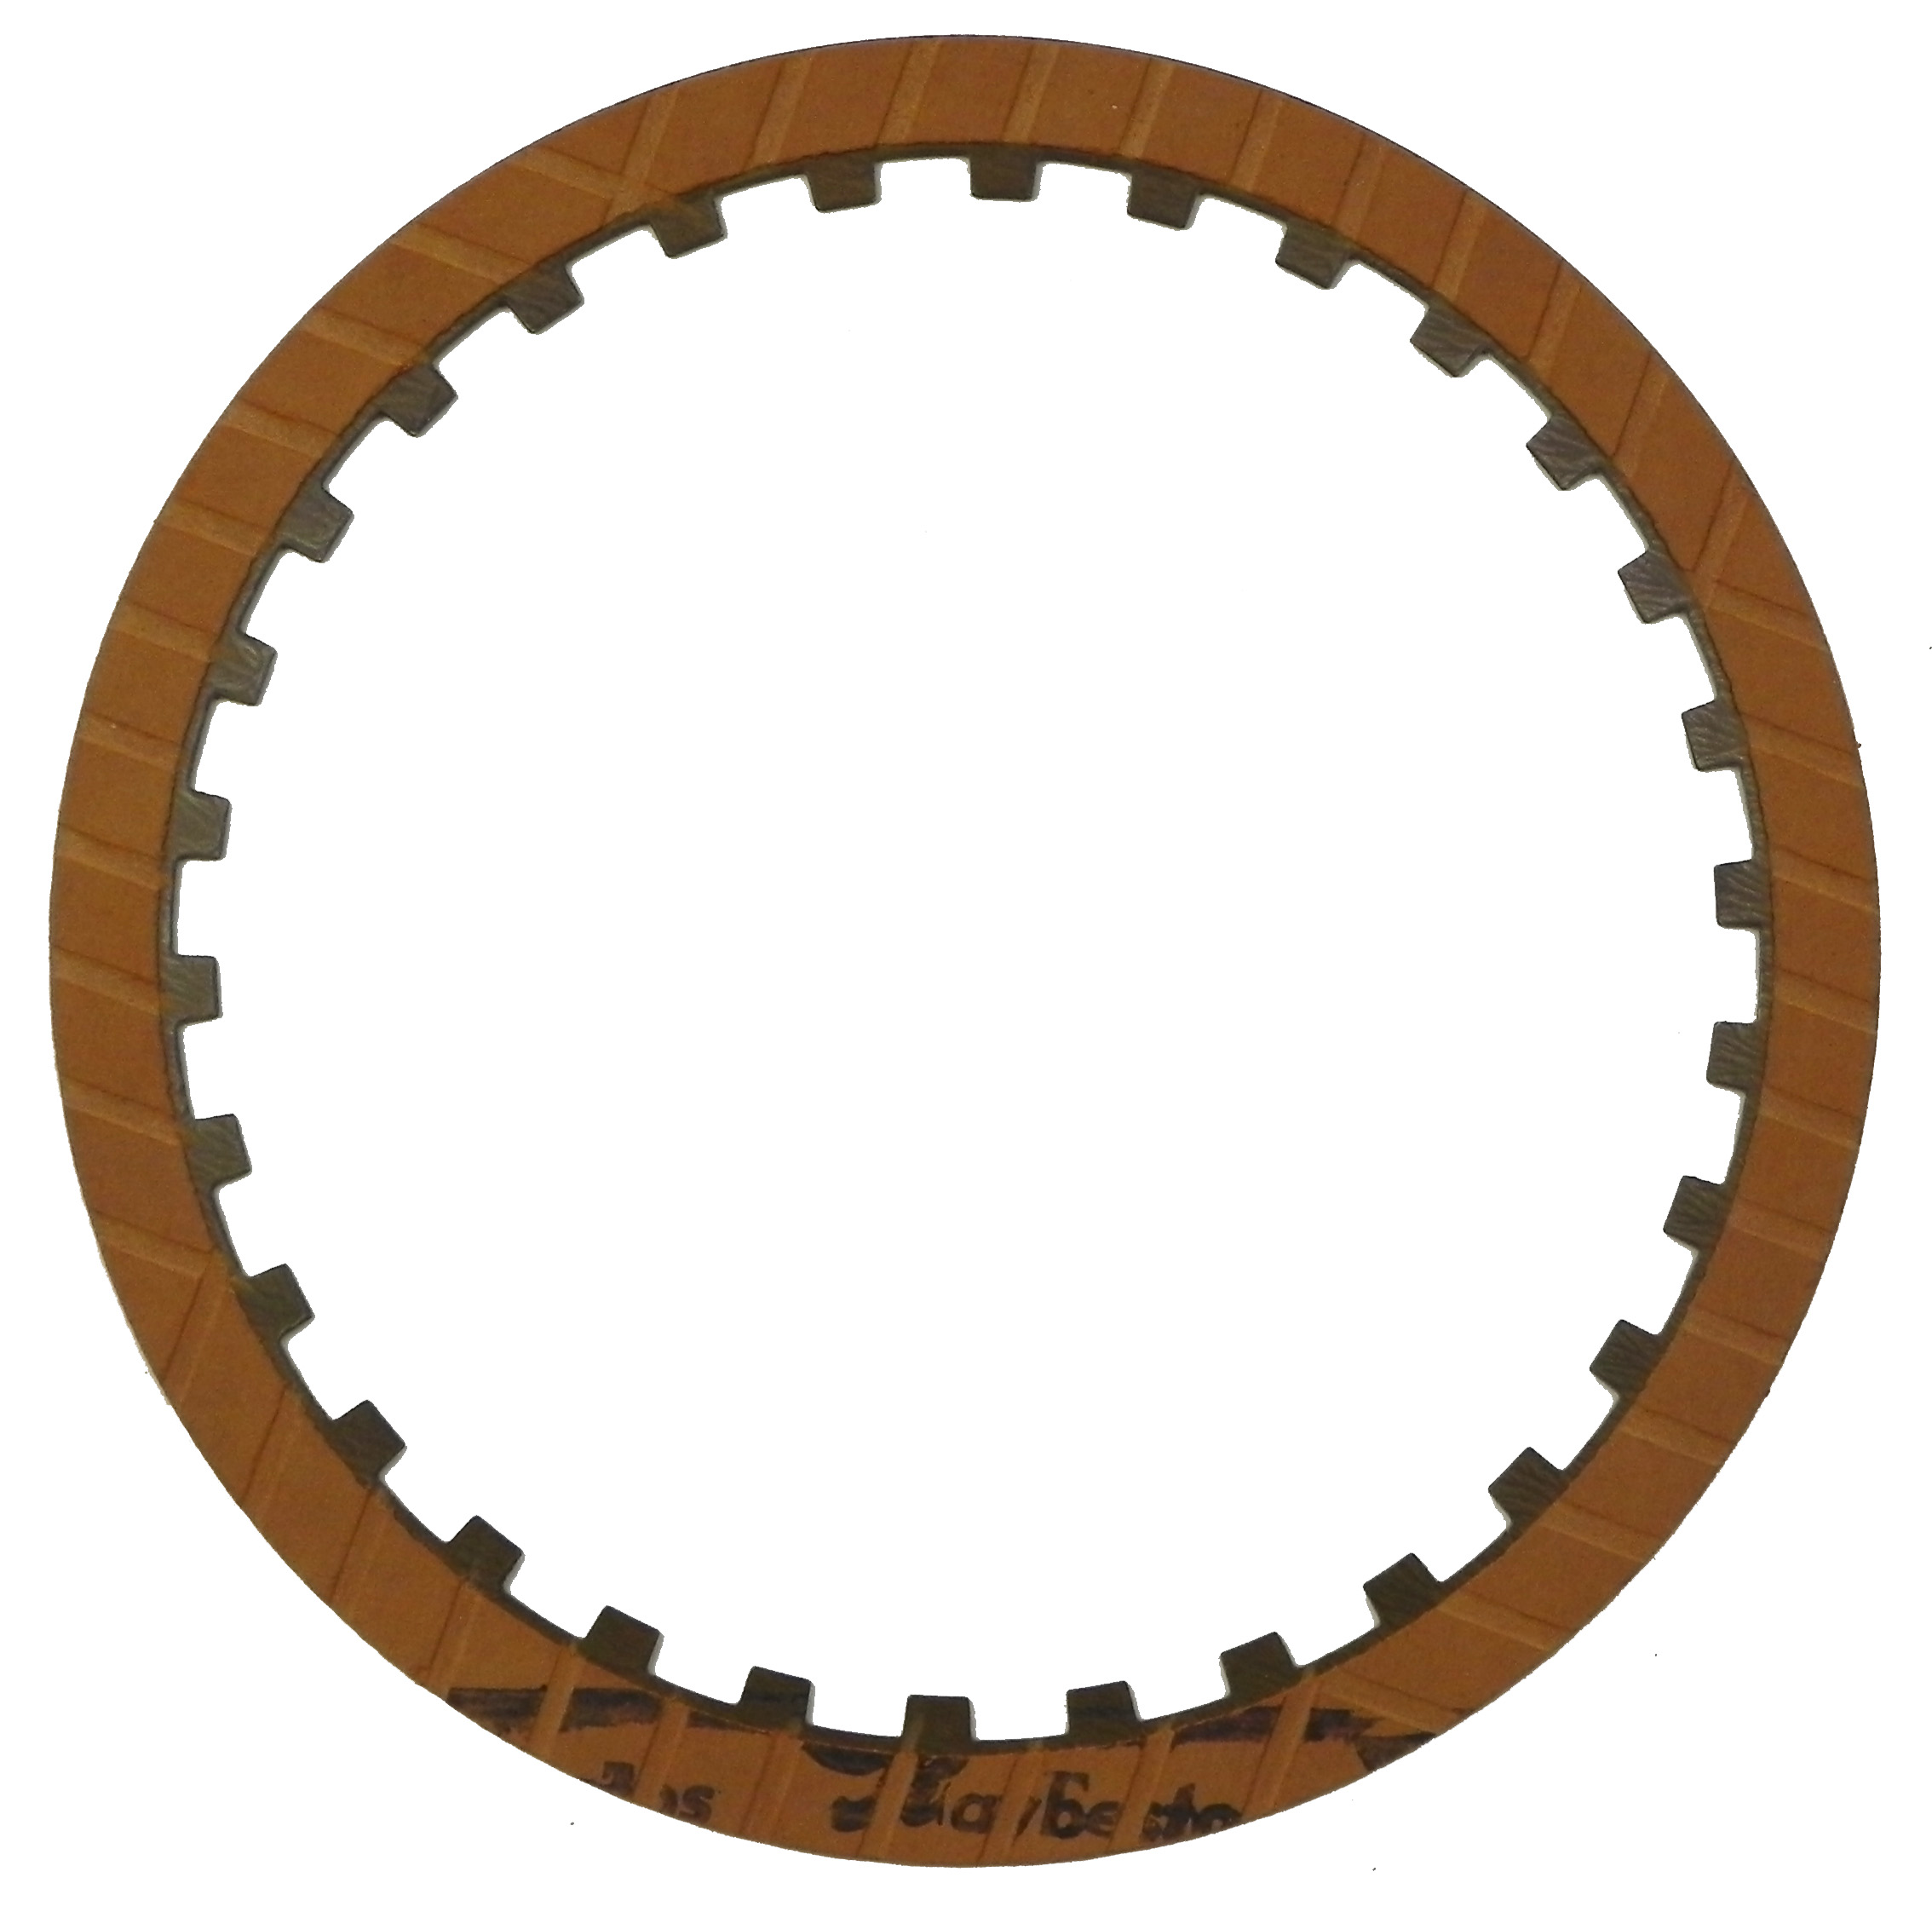 R573550 | 1984-1985 Friction Clutch Plate OE Replacement High (Square Spline)